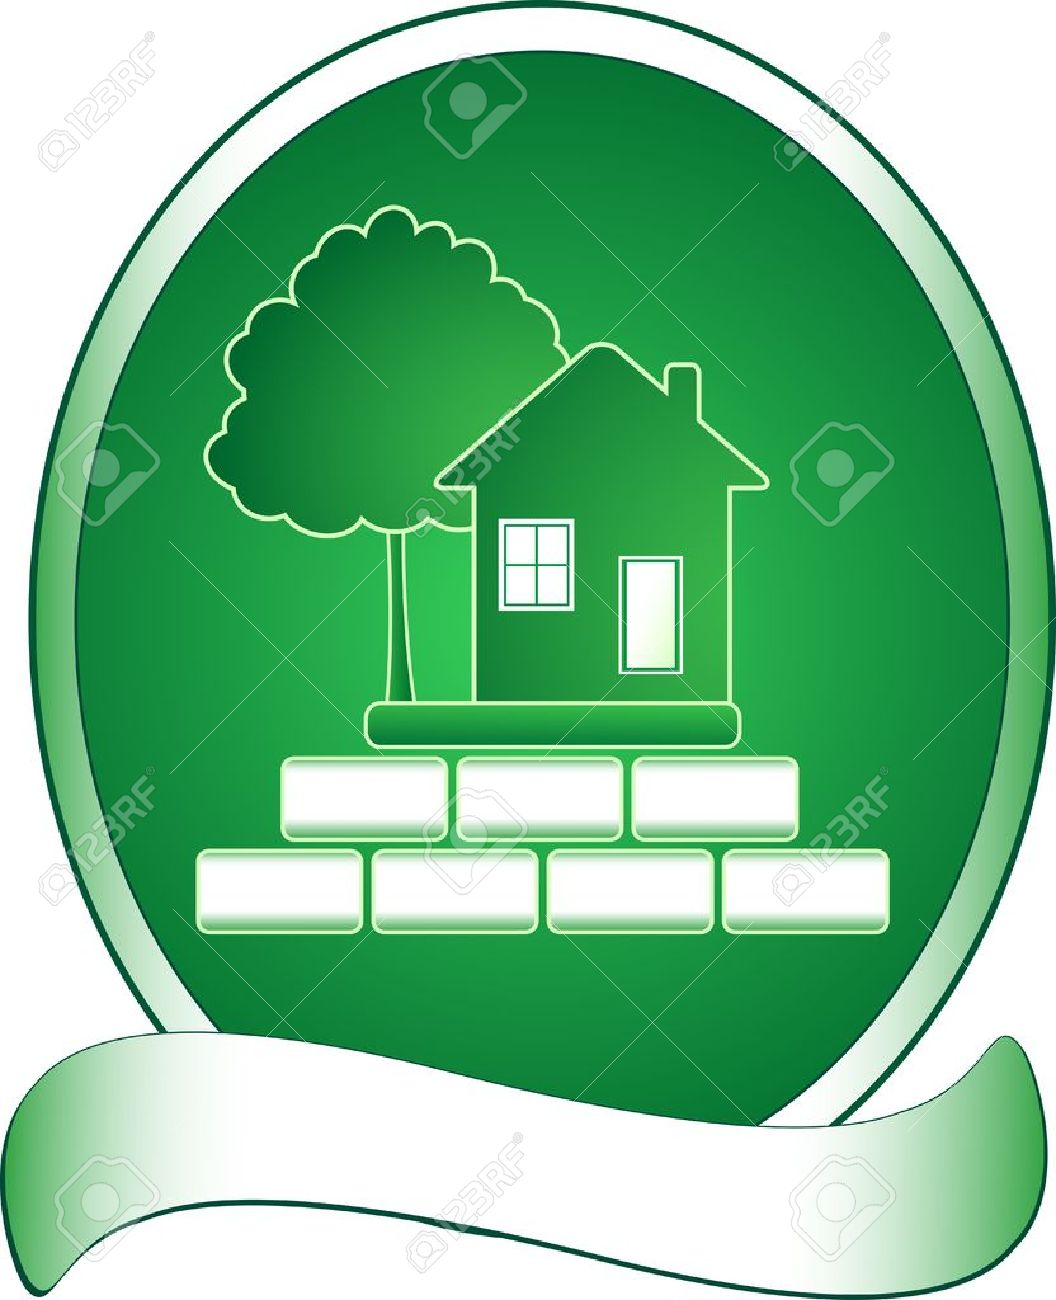 Emblem with green house, tree and rich Stock Vector - 12340671